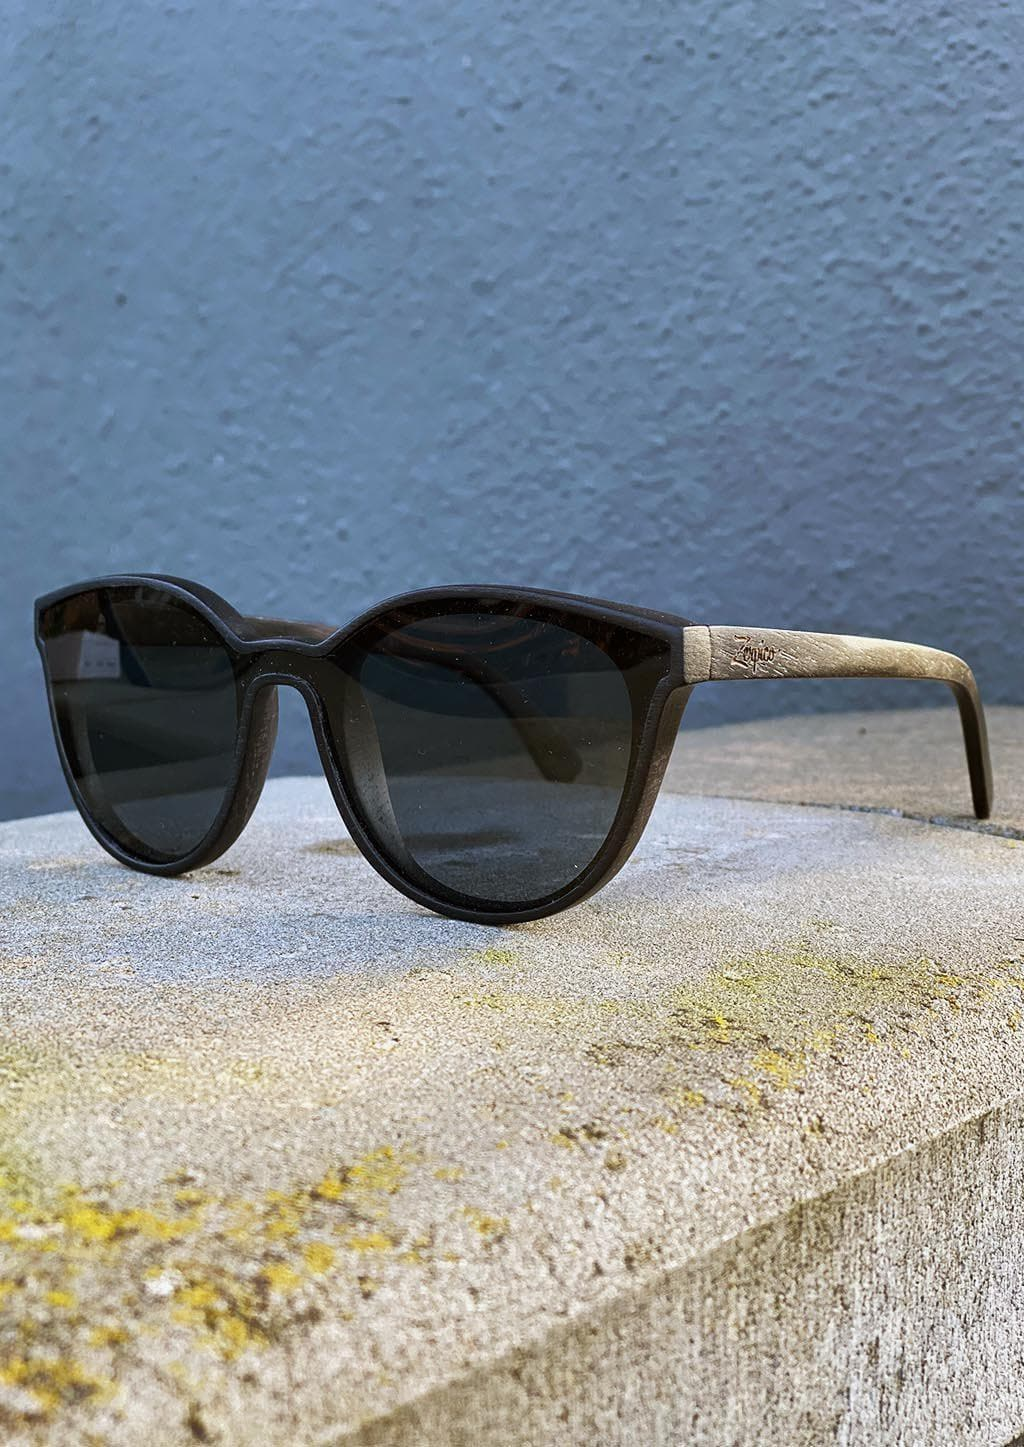 Eyewood - Madison - All wooden sunglasses with style. Outside in the sun.